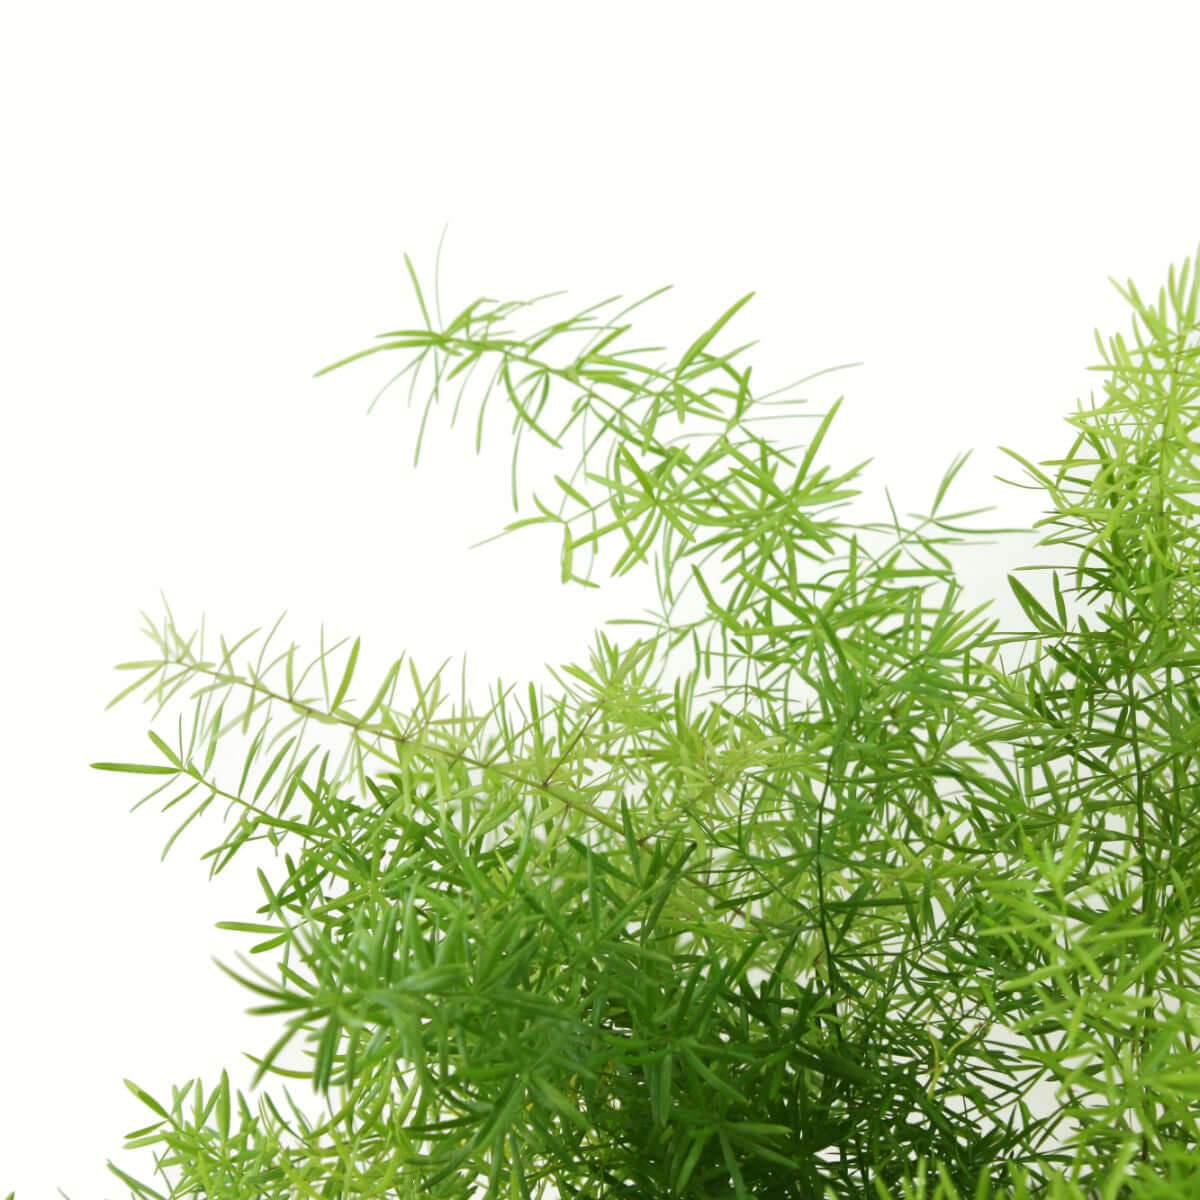 Picture of Live Asparagus Fern Sprengeri aka Asparagus densiflorus 'Sprengeri' Foliage Hanging Plant Fit  1 Gallon Pot